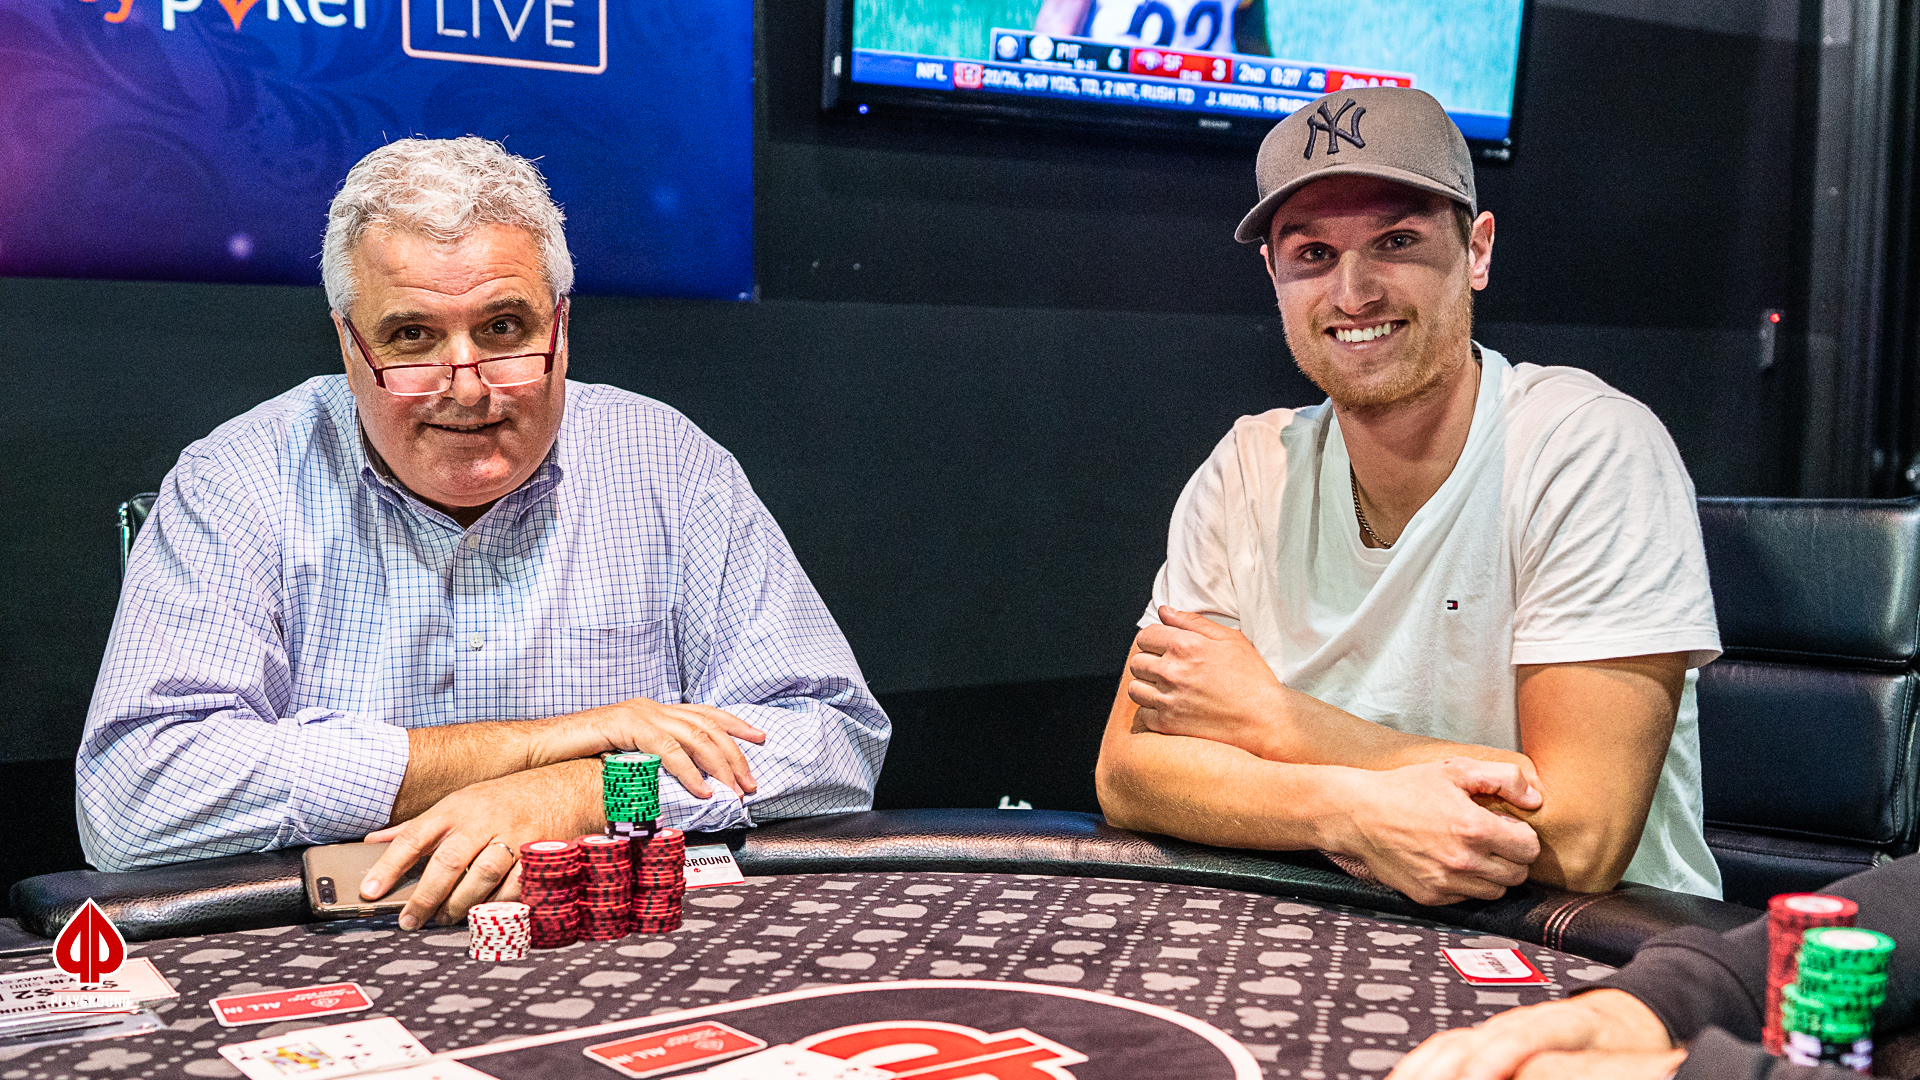 The Last Day of Summer Delivers the PLO BBJ!